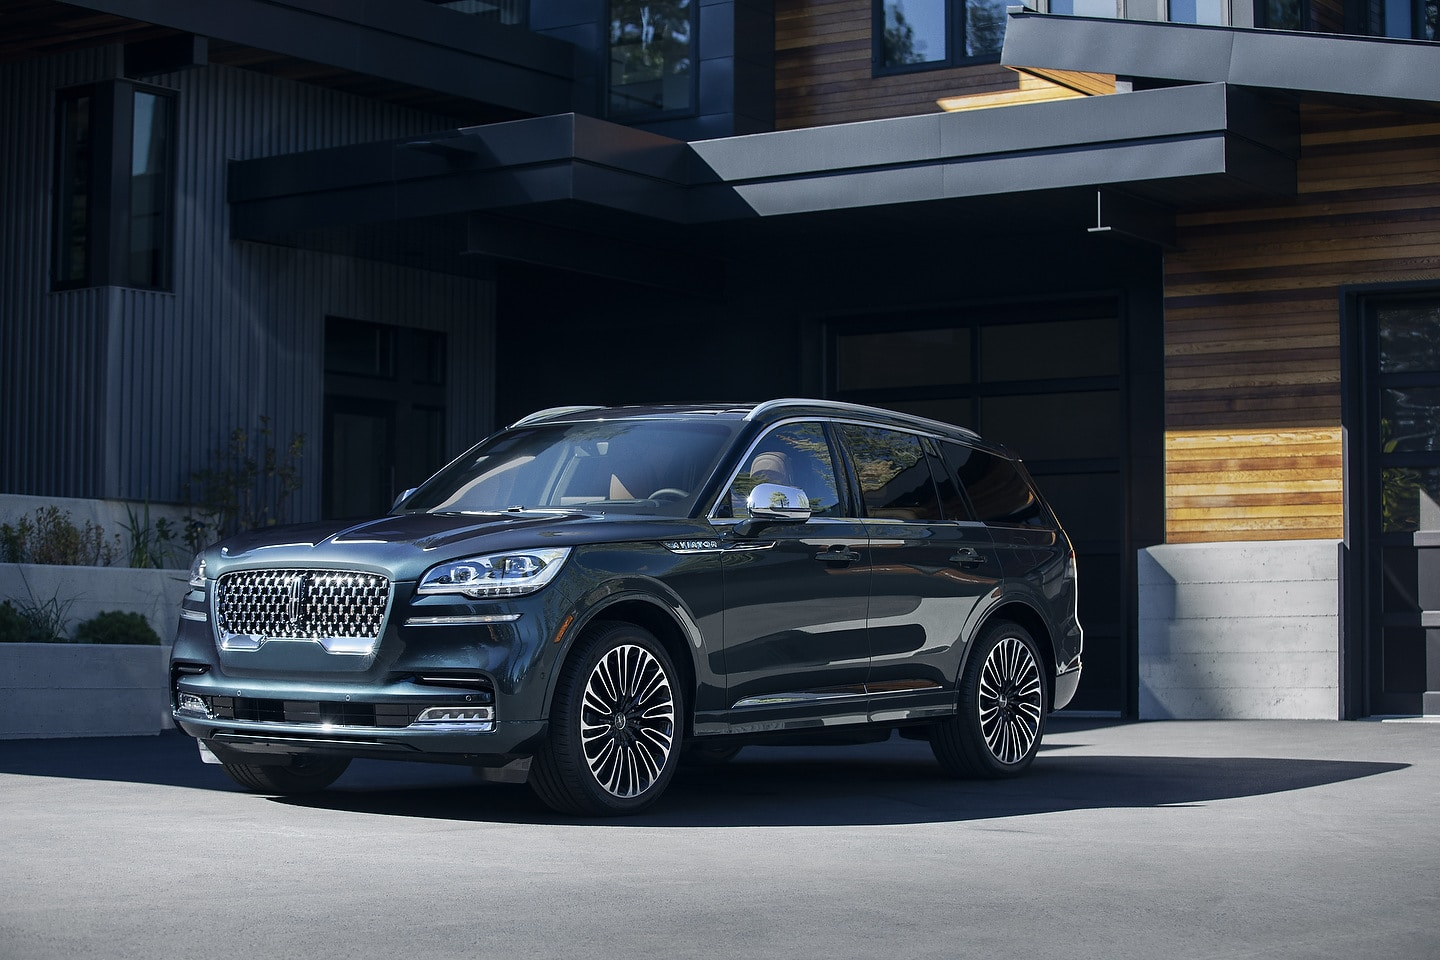 2020 Lincoln Aviator | Photo: Lincoln